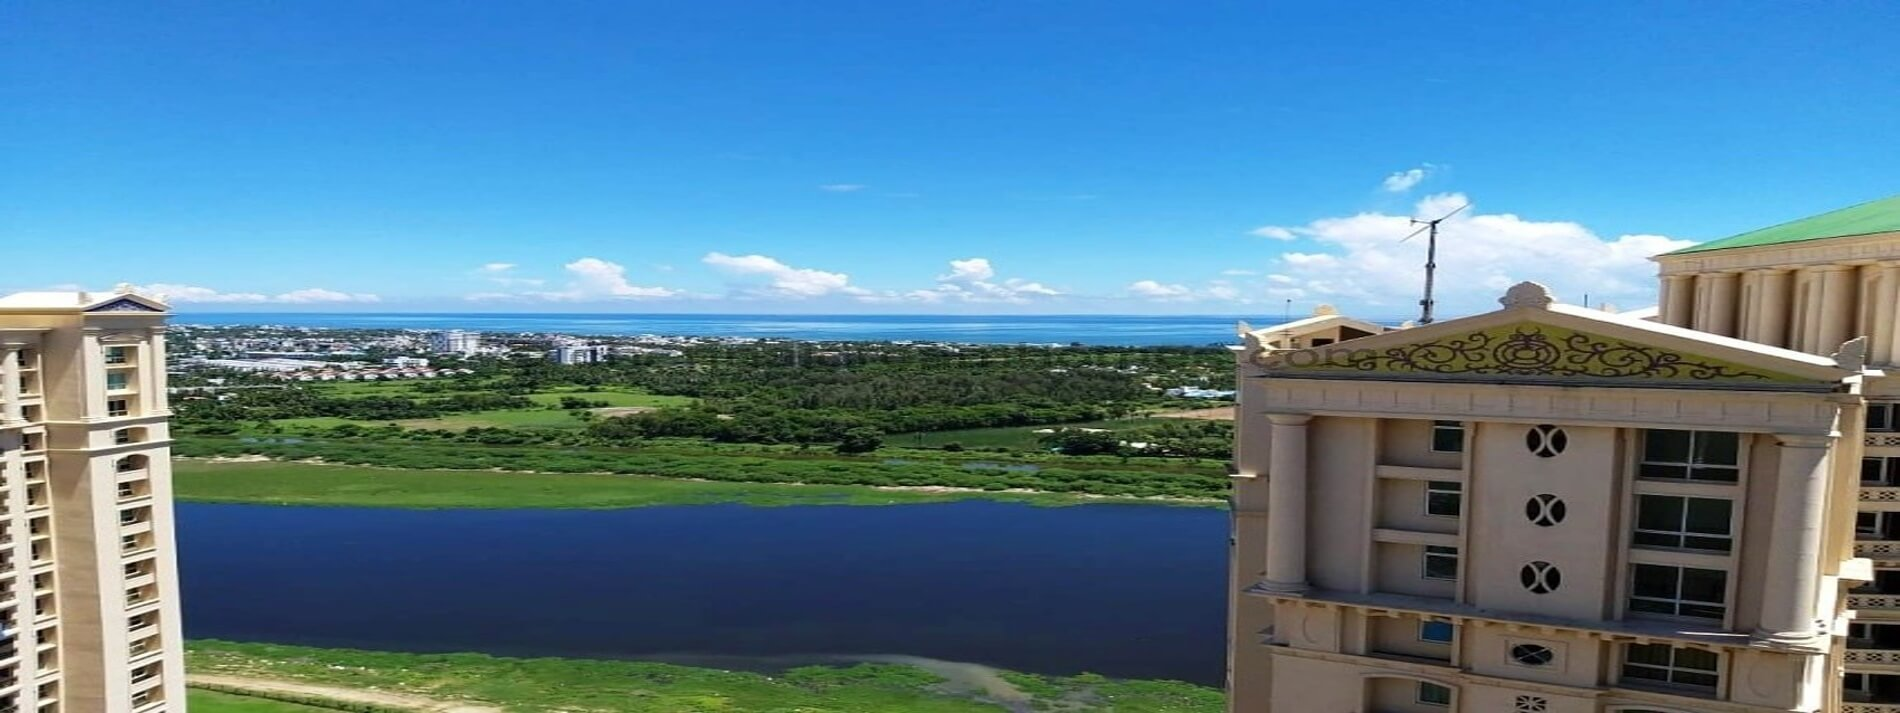 3 BHK Apartment for Resale with Sea, Lake view in OMR